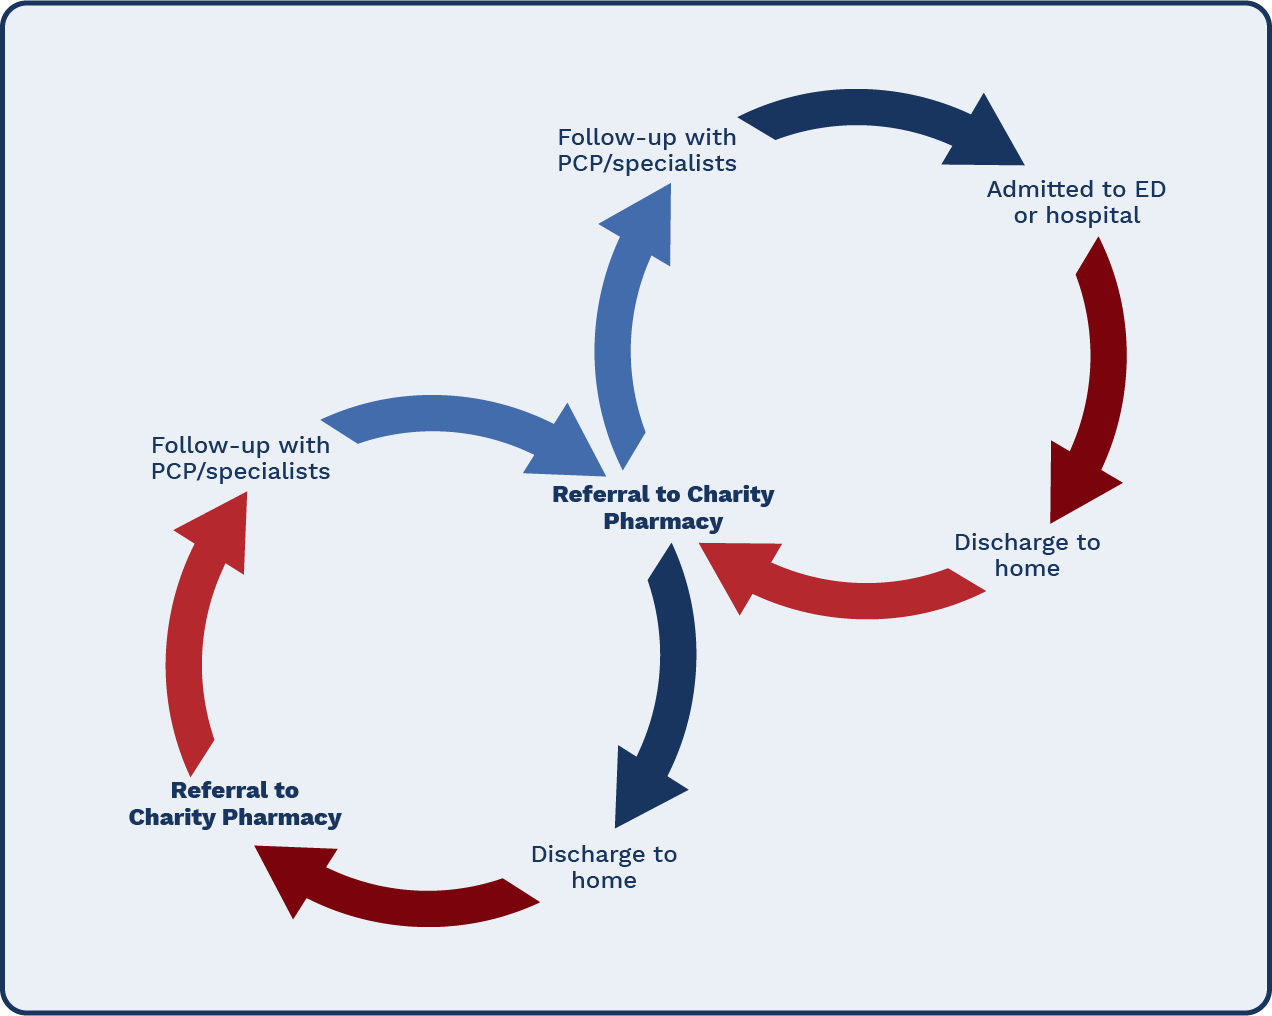 Charity pharmacy referral process